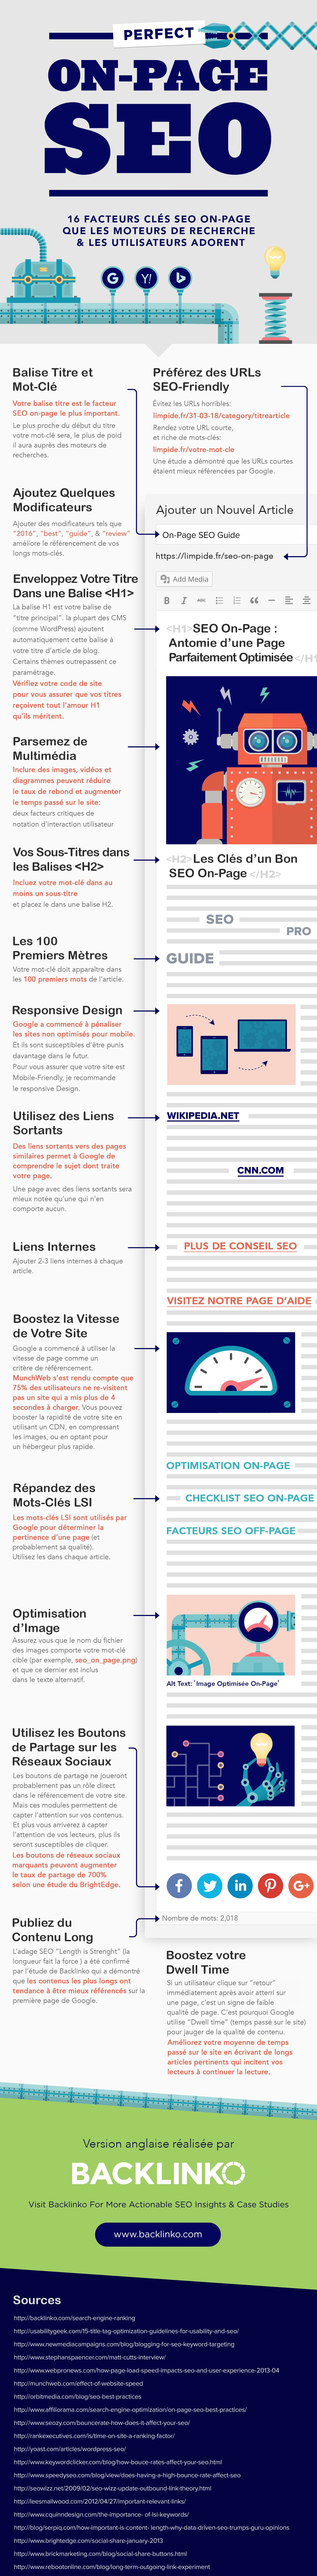 on-page-seo-2018